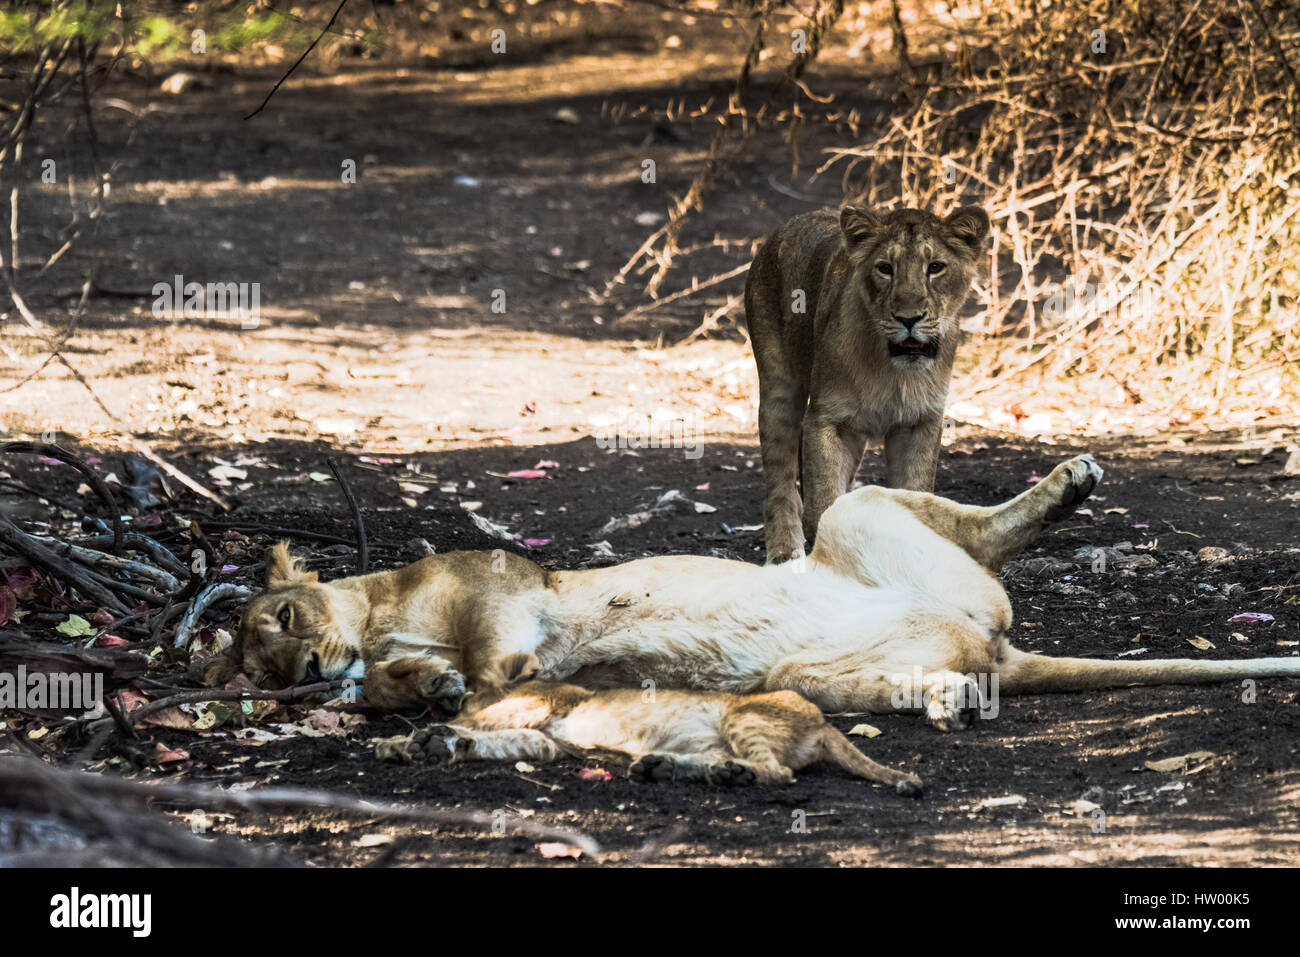 Asiatic Lion family resting - Stock Image